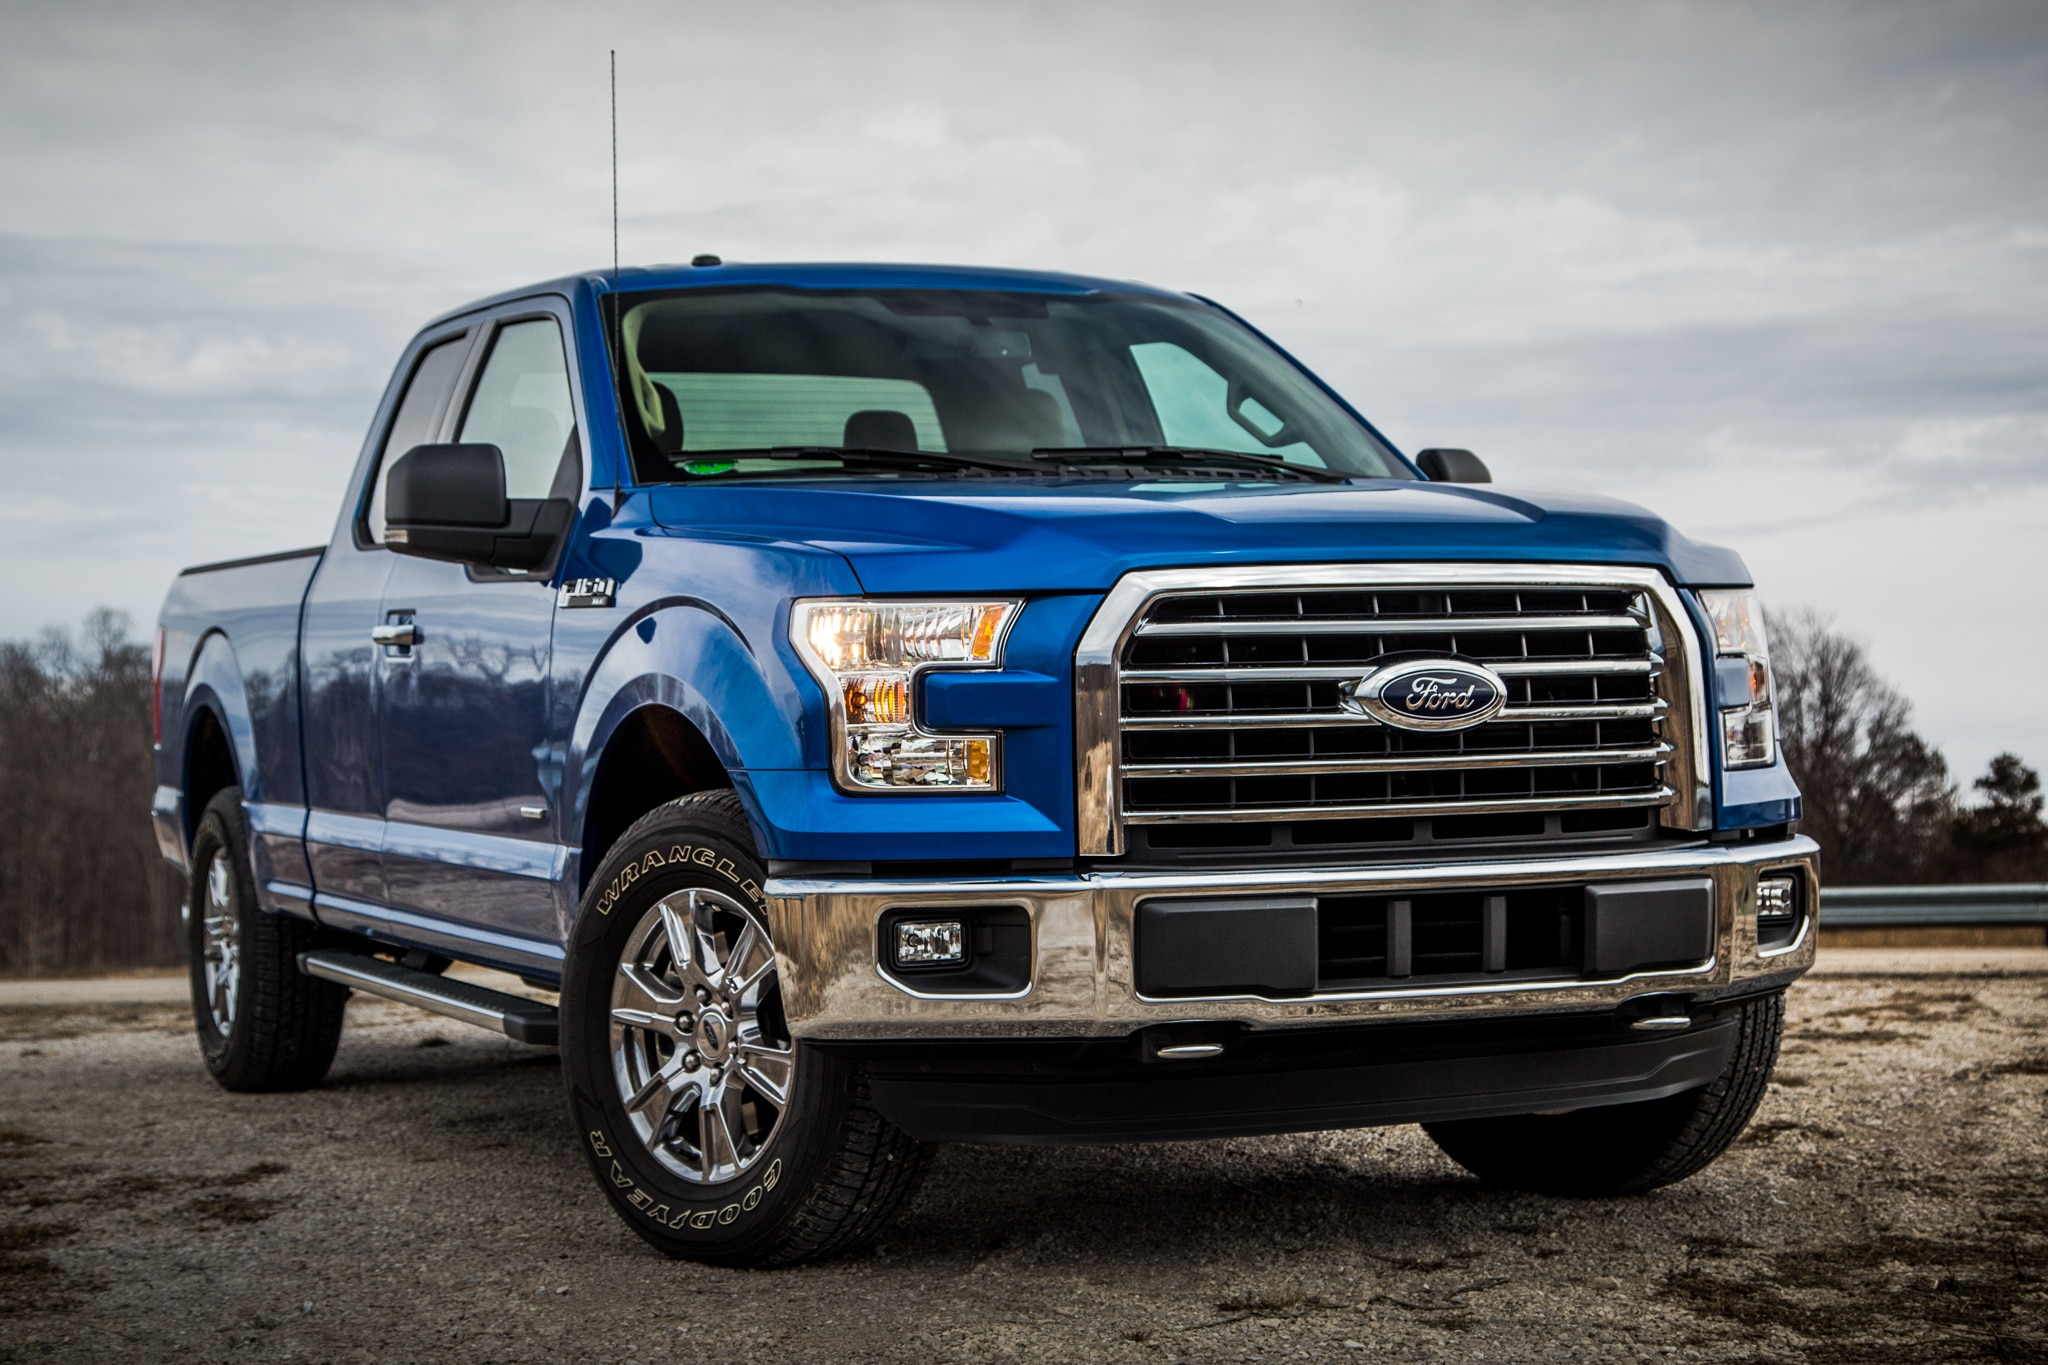 2015 Ford F-150 XLT Supercab 4x4 2 7-liter EcoBoost Review